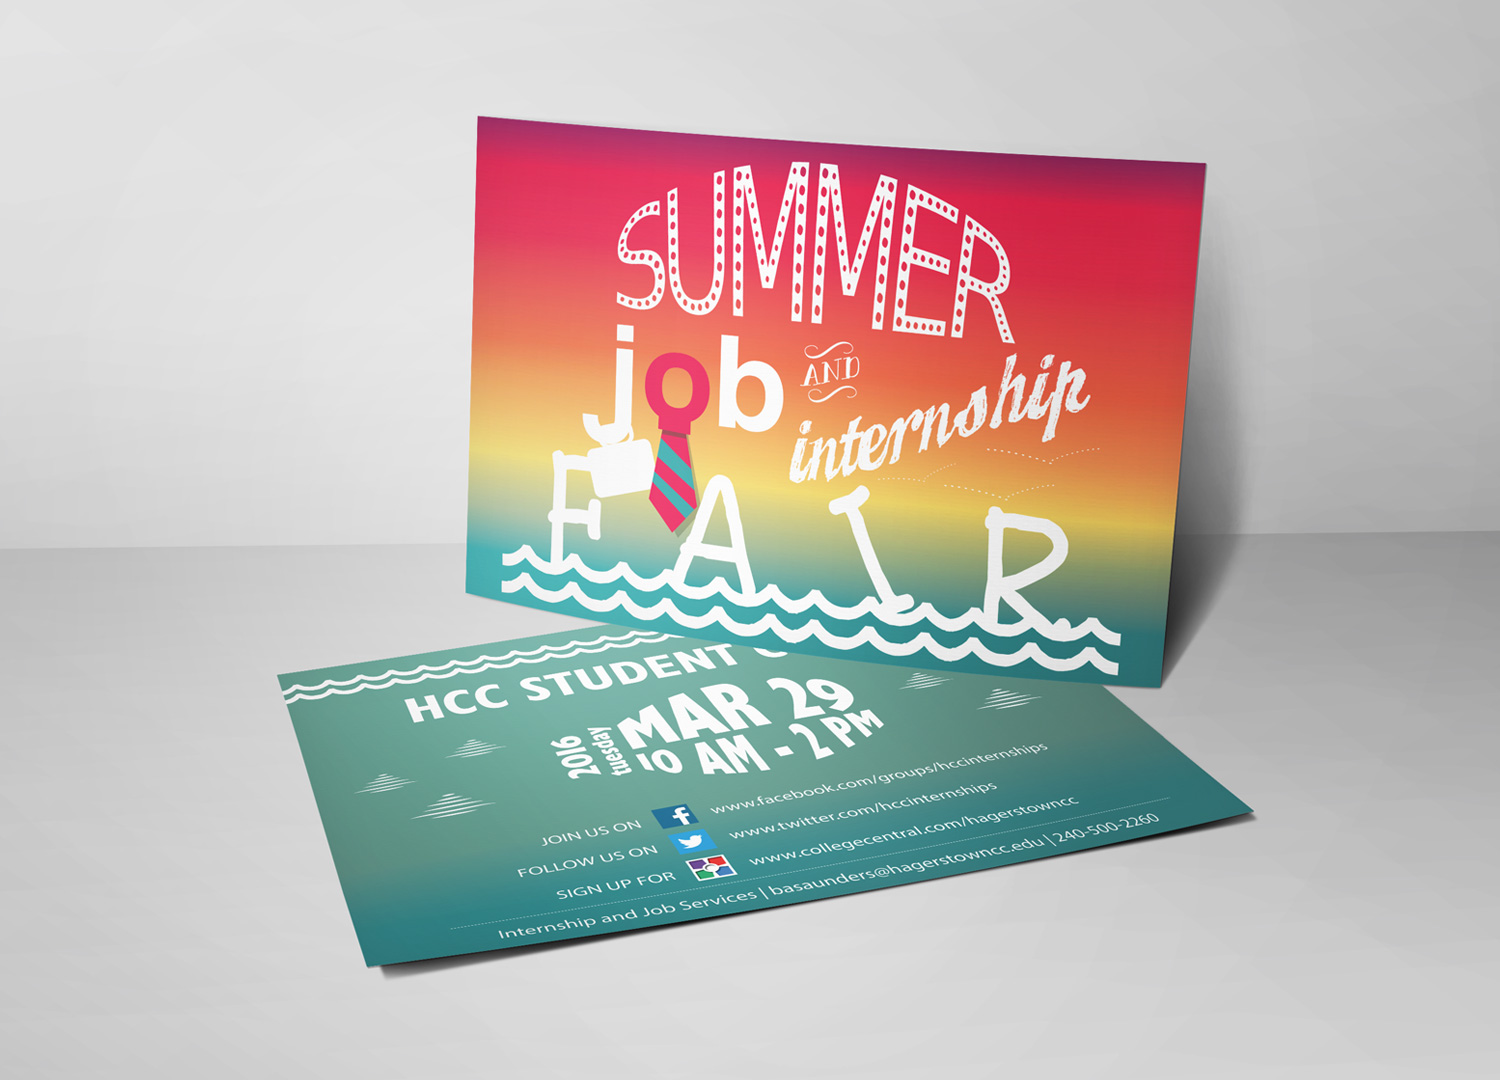 creative mind central hcc summer job and internship fair hcc summer job internship fair 2016 mockup